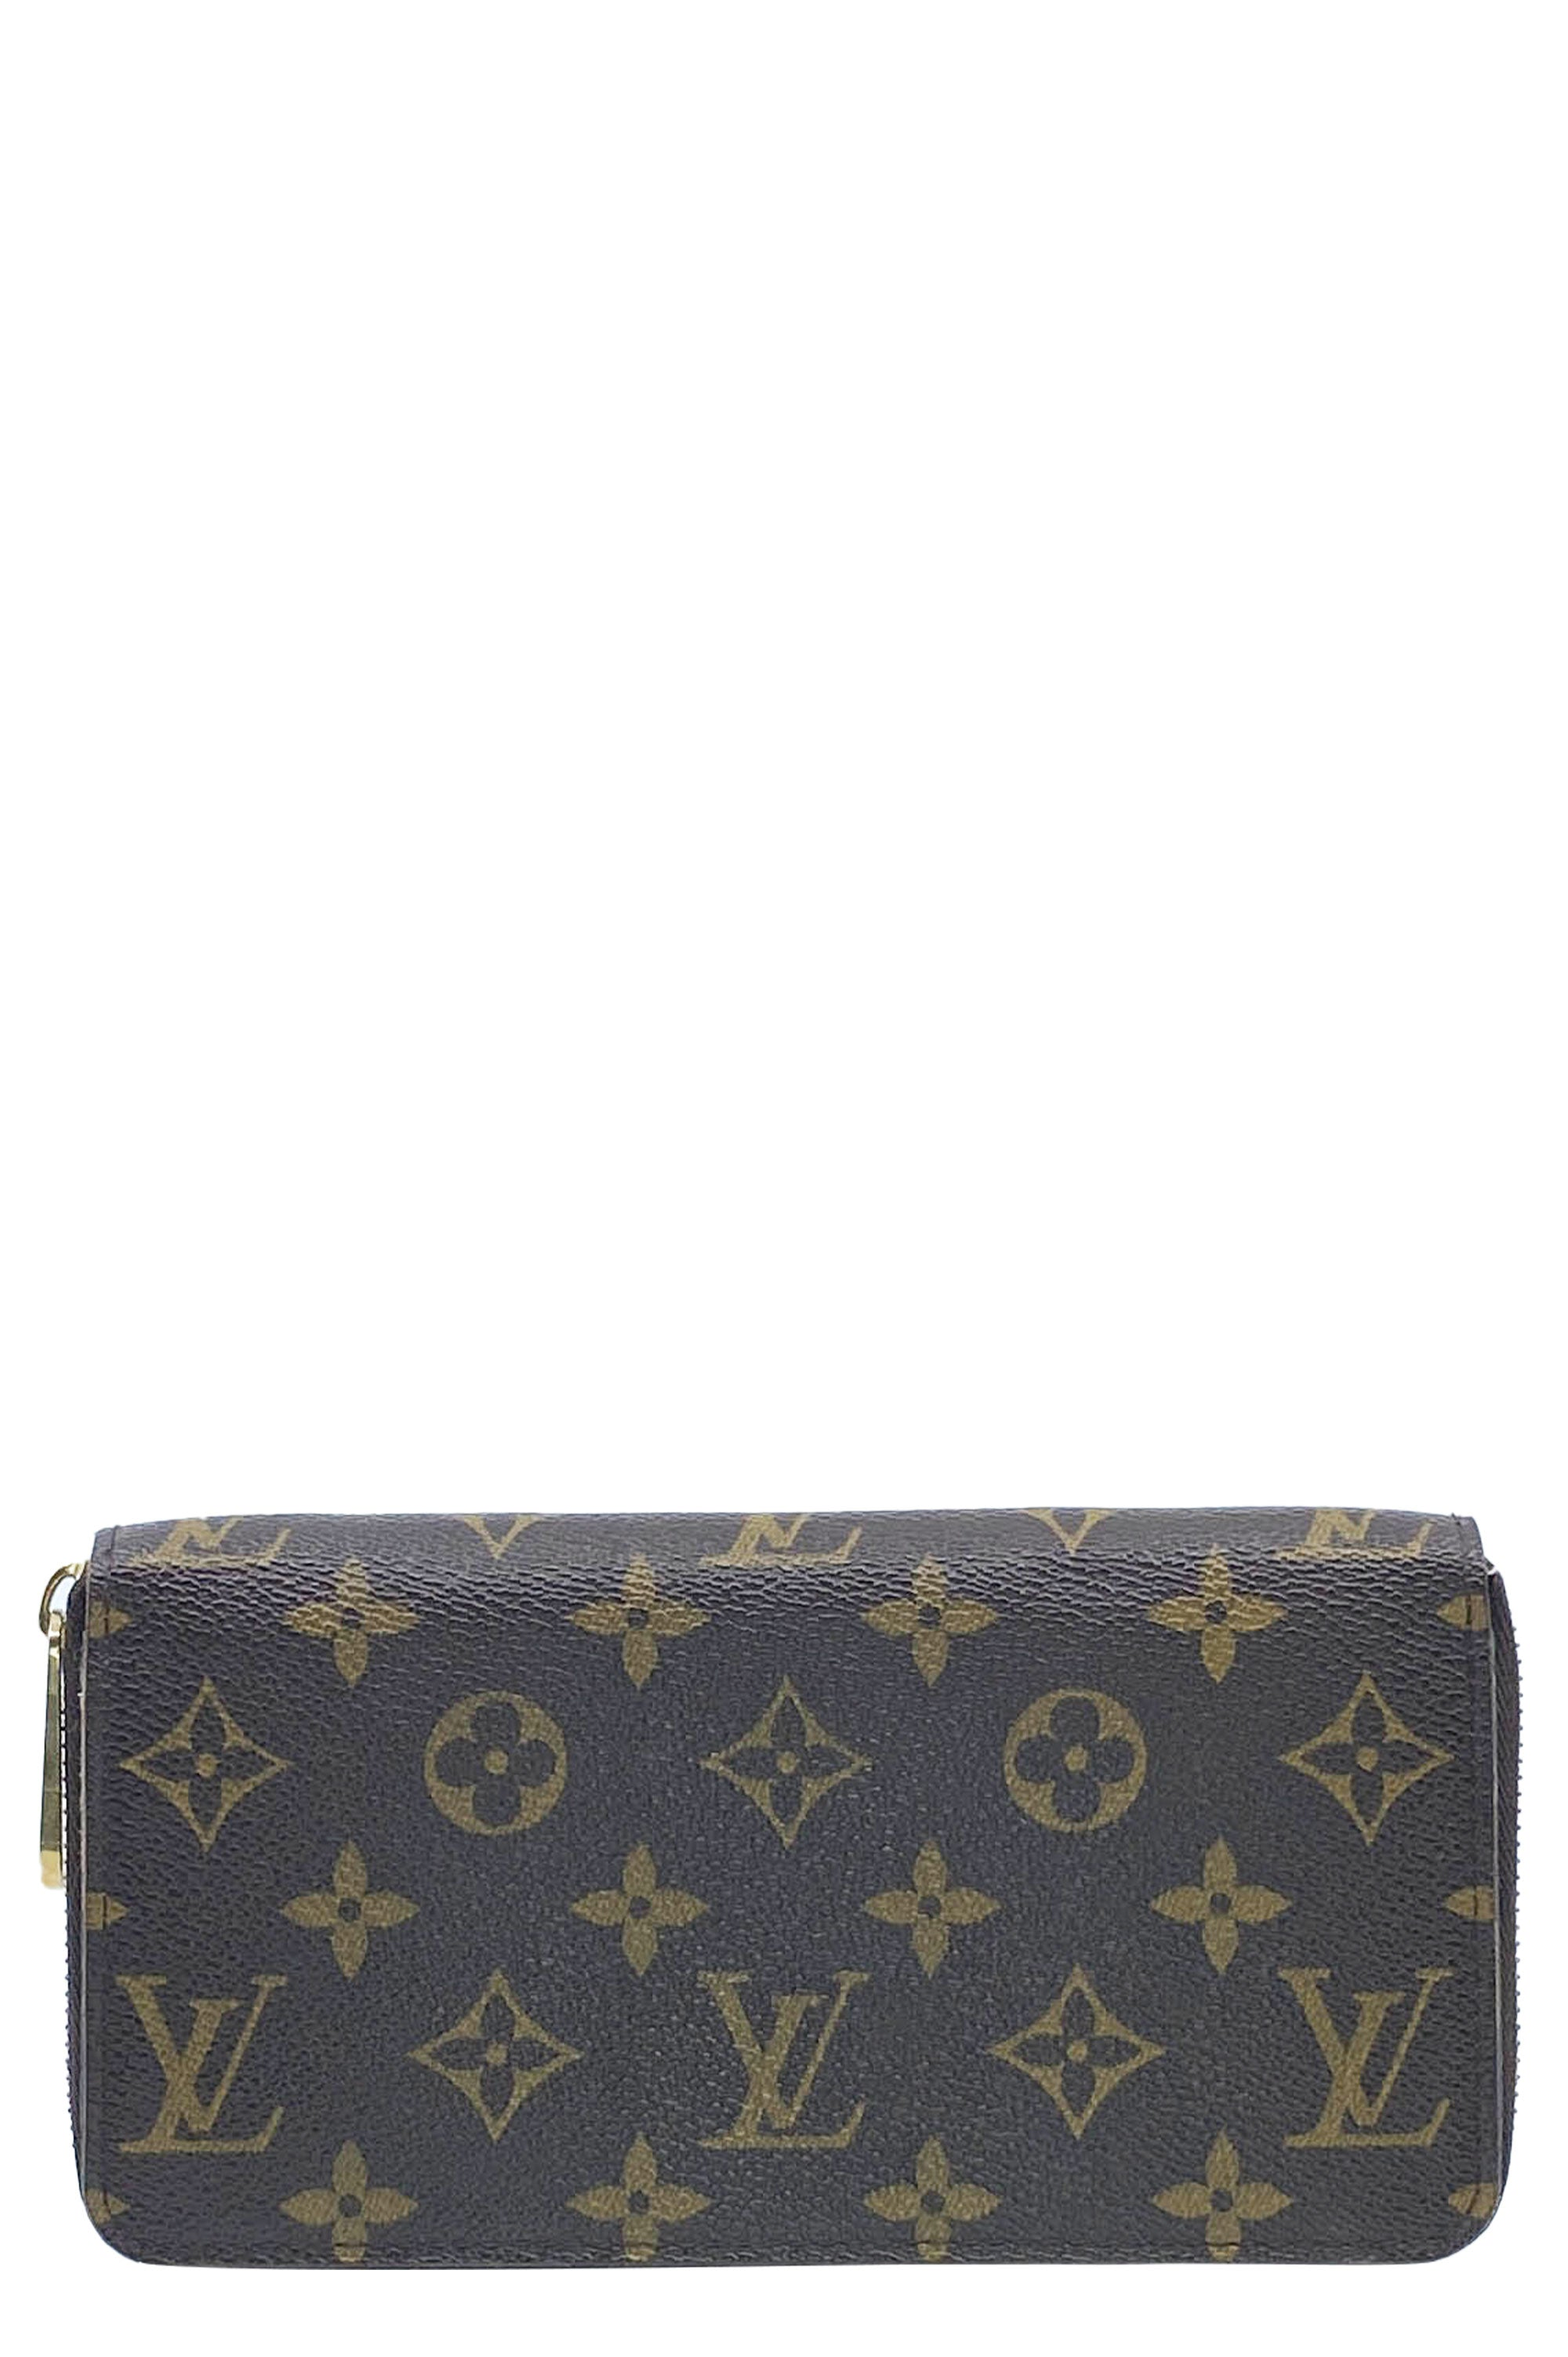 LOUIS VUITTON Zip Around Continental Monogram